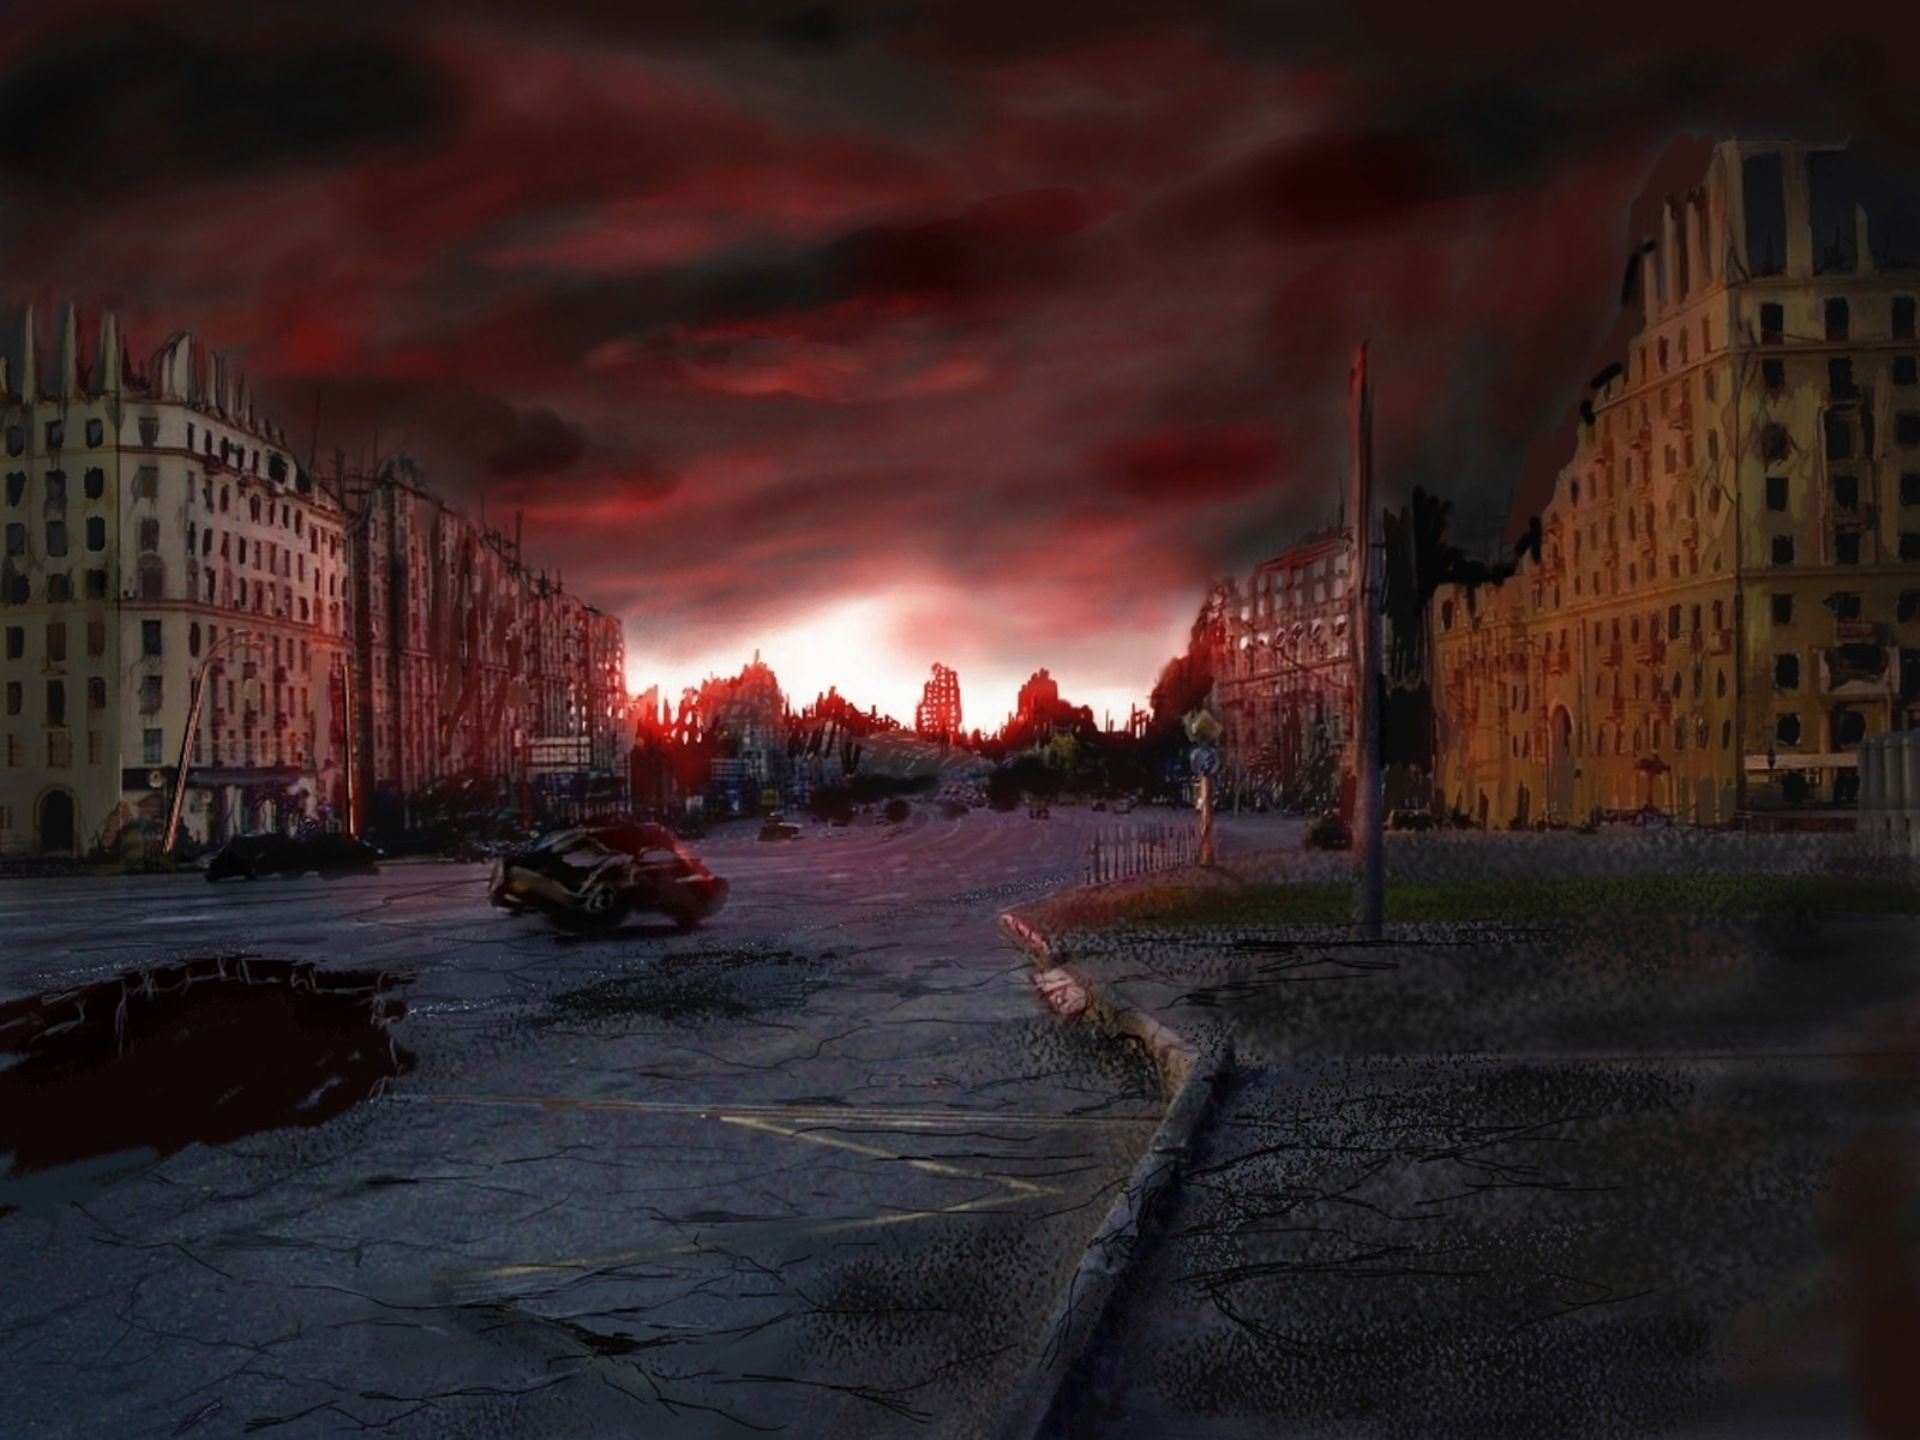 destroyed city on fire - Google Search   Architecture and ...